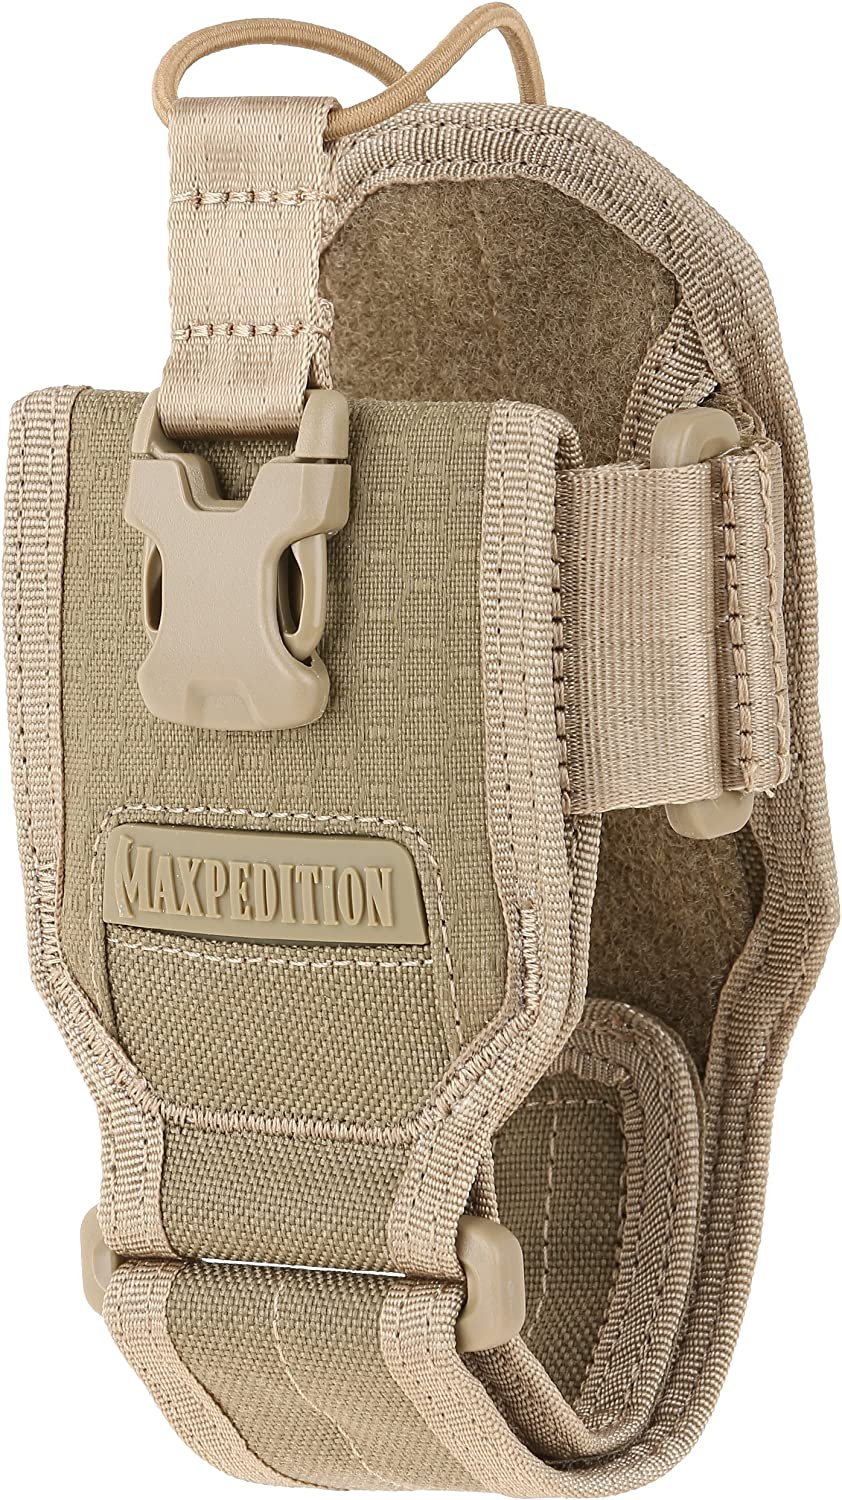 Maxpedition Rdp Radio Pouch, Tan